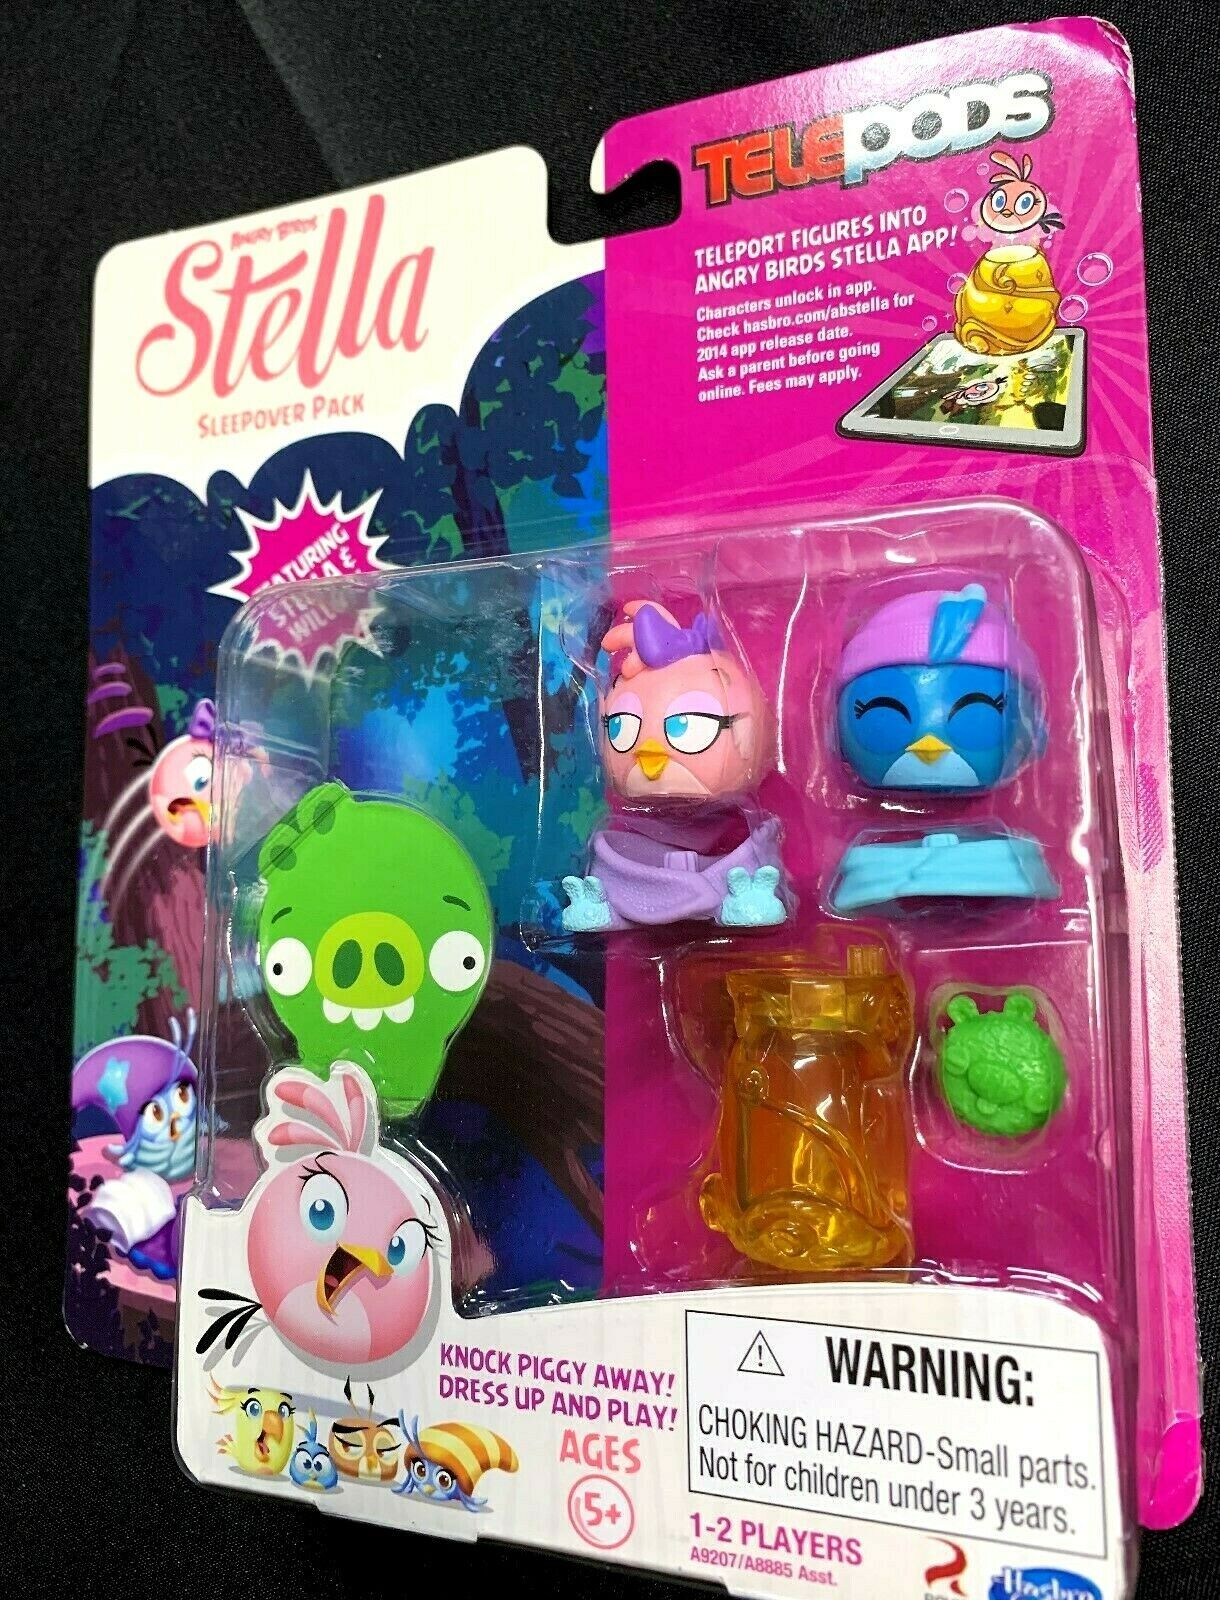 New Hasbro Angry Birds Telepods Stella Willow Sleepover Pack